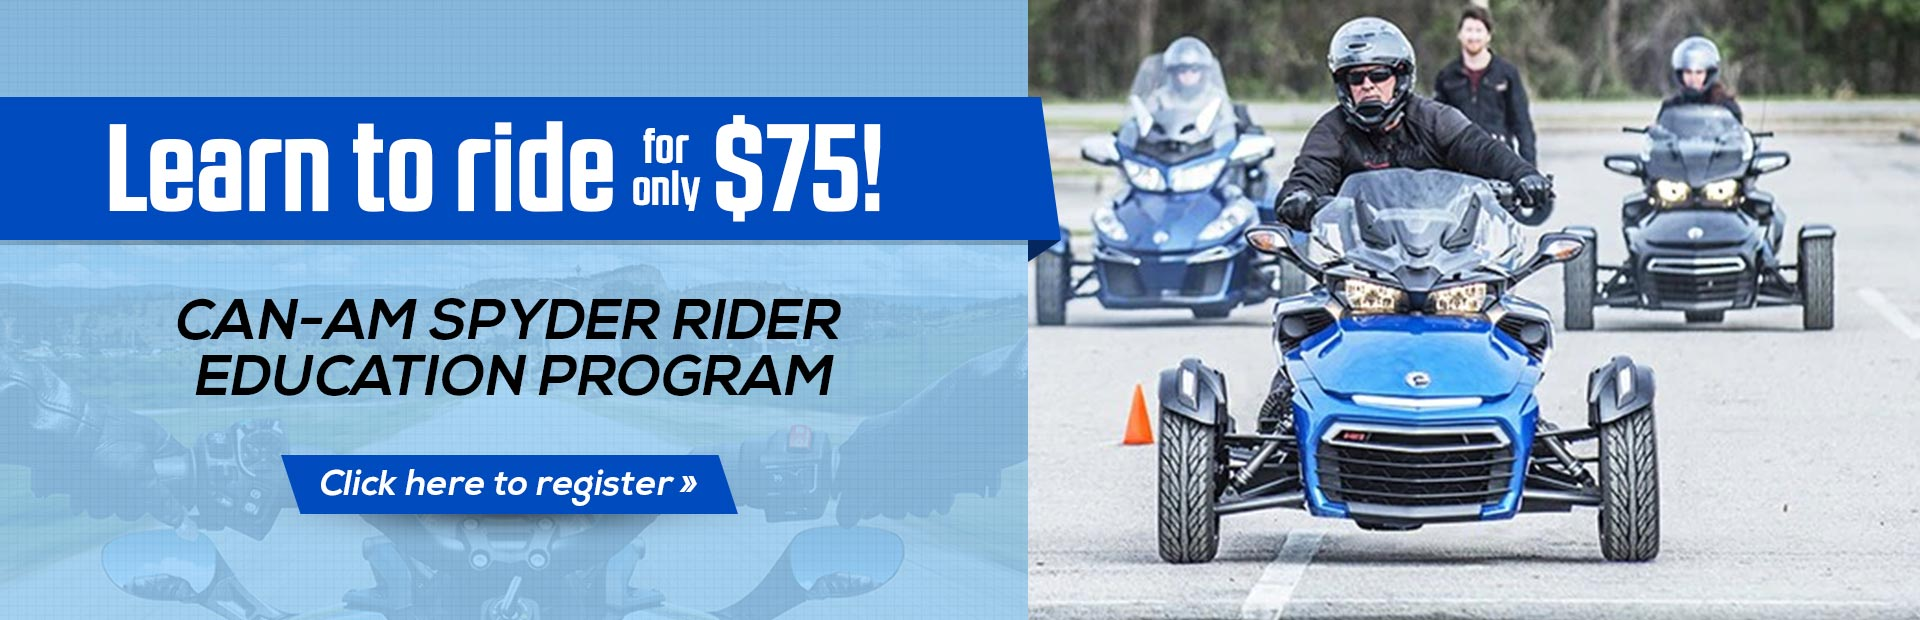 Can-Am Spyder Rider Education Program: Click here to register.